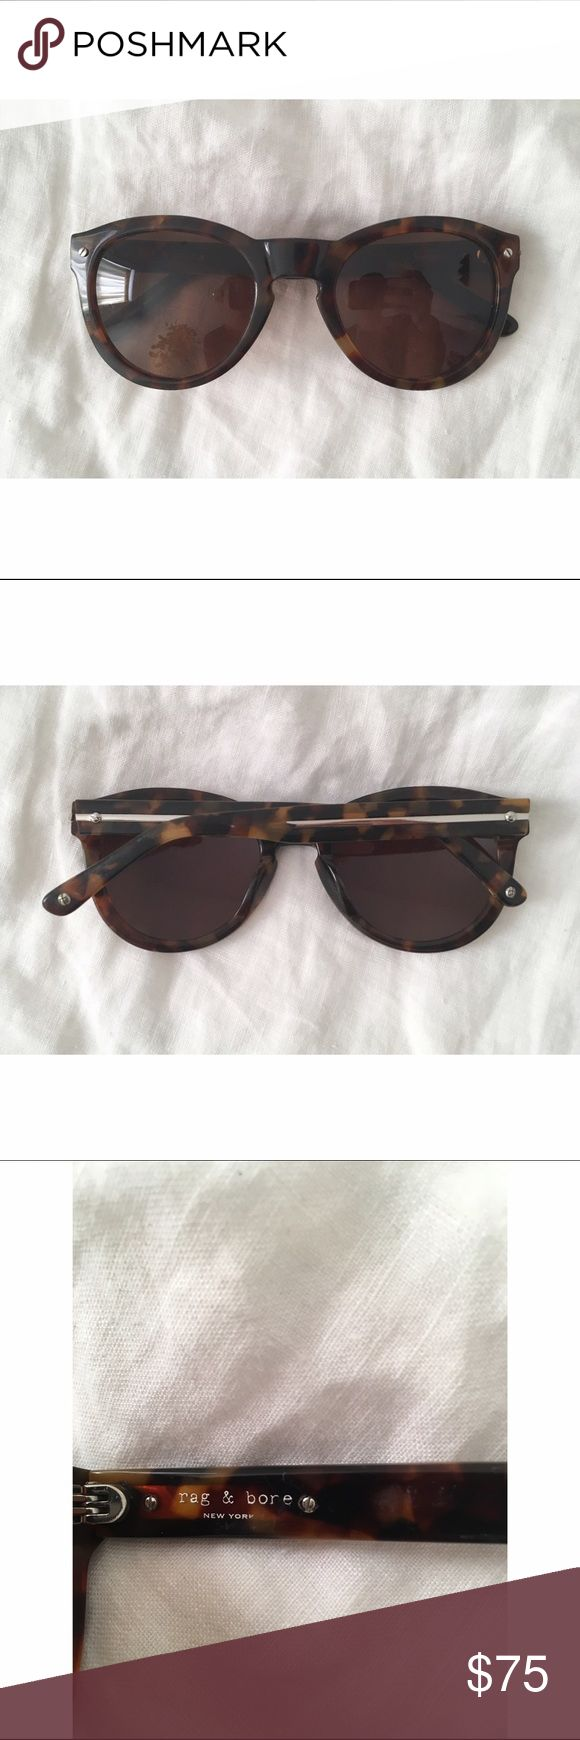 Rag & Bone Sunglasses Tortoise shell sunglasses that are in great condition. There is the usual wear marks, but there are no scratches.  Metal detailing on he arms. Very well made (made in Japan). rag & bone Accessories Sunglasses